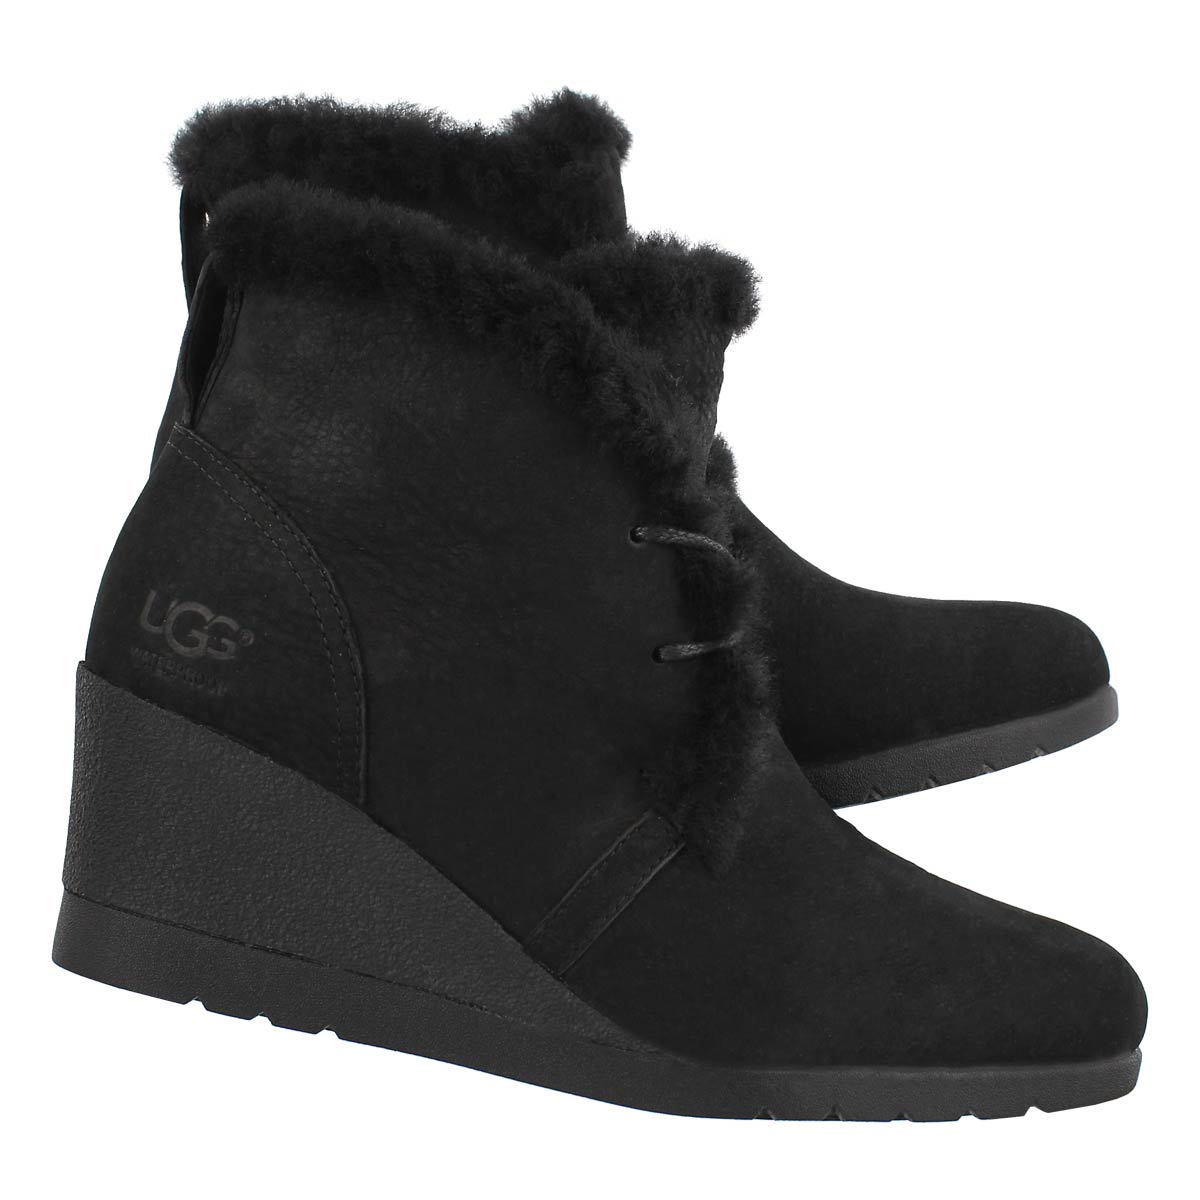 21281701bfb Details about UGG Australia Women's Jeovana Lace Up Waterproof Wedge Boot